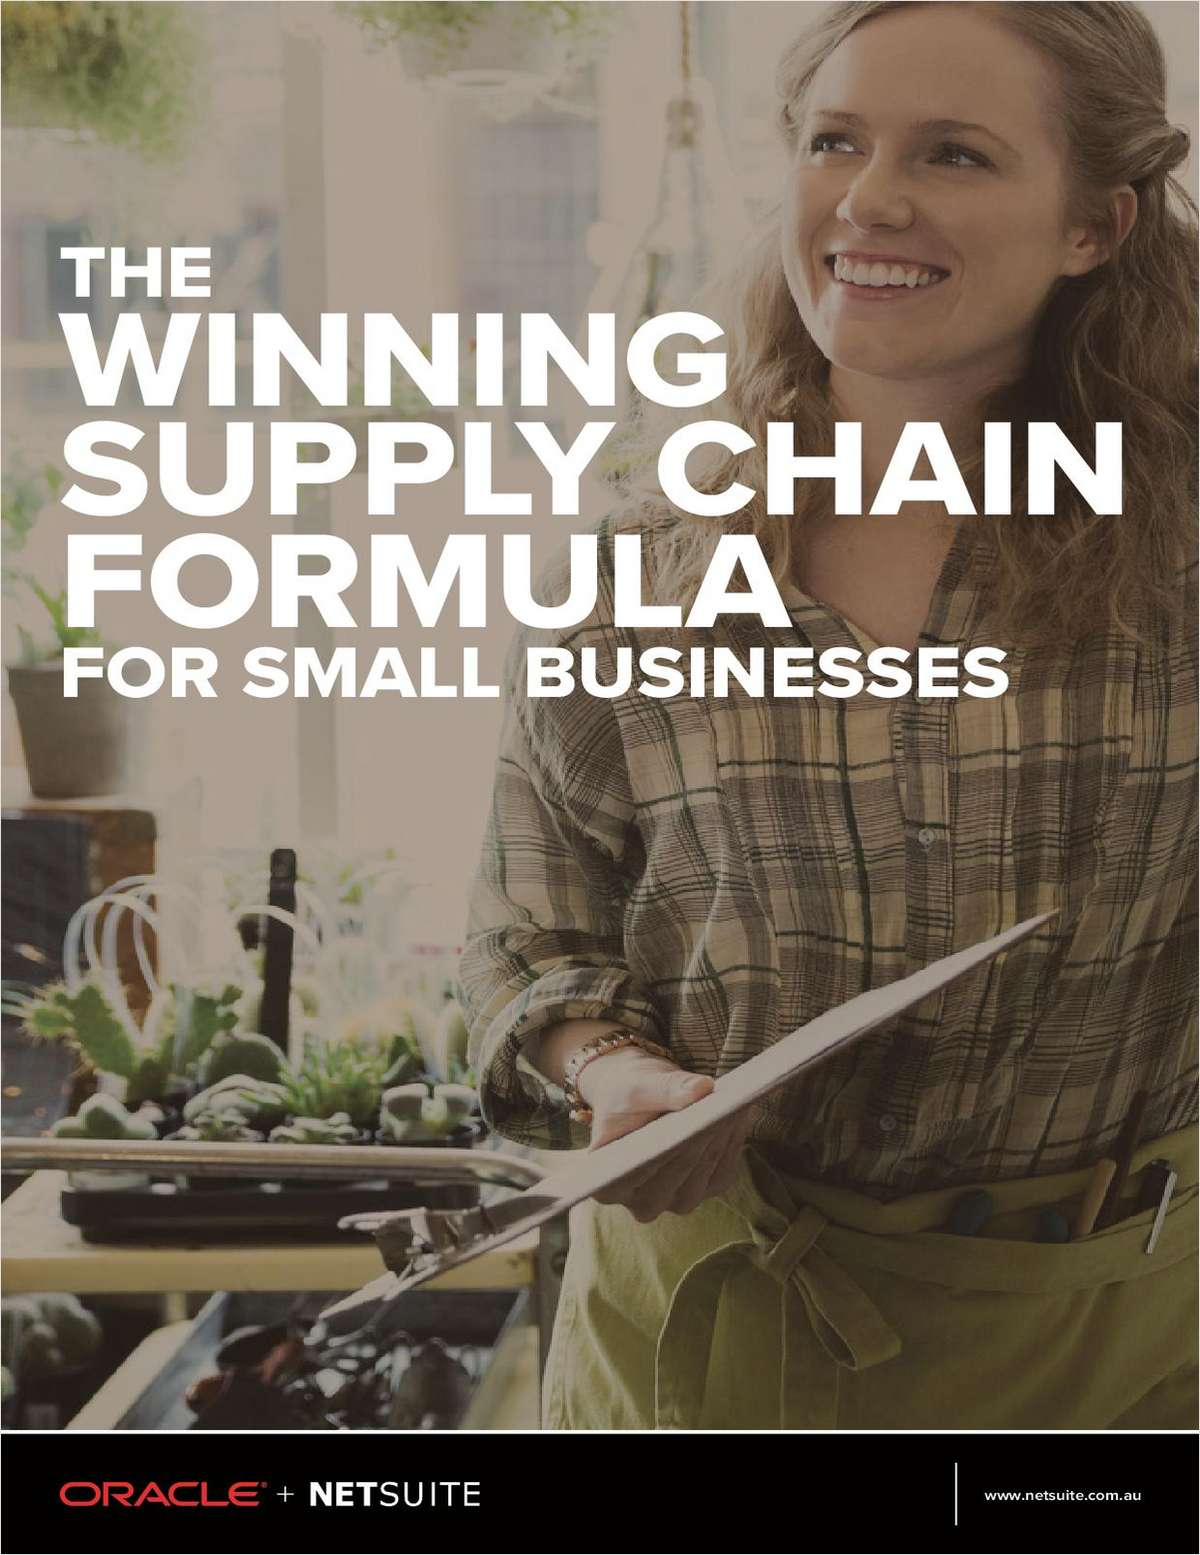 The Winning Supply Chain Formula for Small Businesses